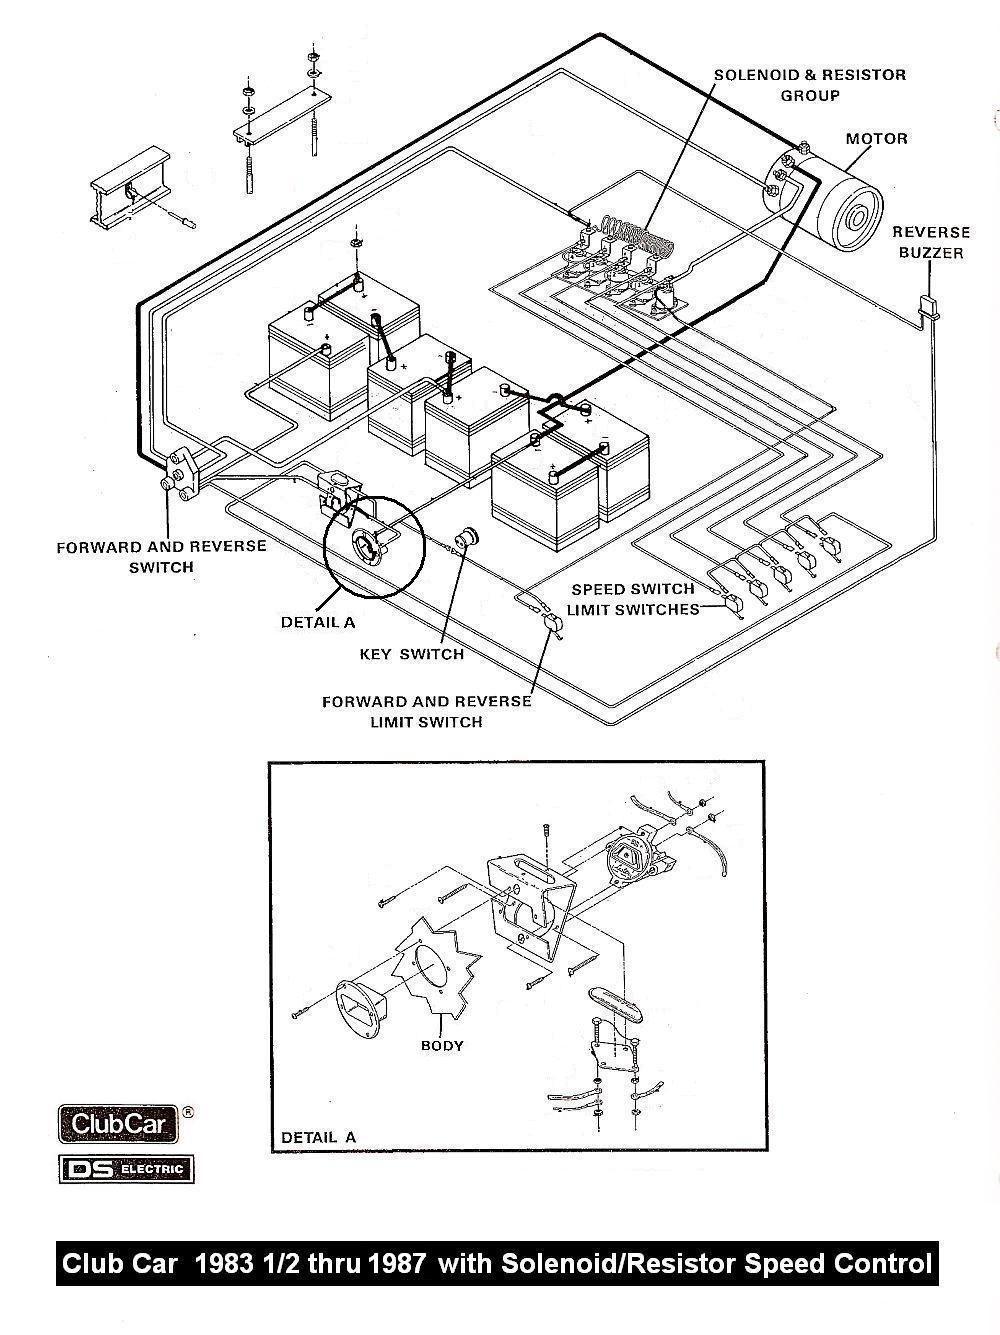 0e8d045370be7682b159825224221faa vintagegolfcartparts com *freezer & crock pot* pinterest gas club car golf cart wiring diagram at gsmportal.co